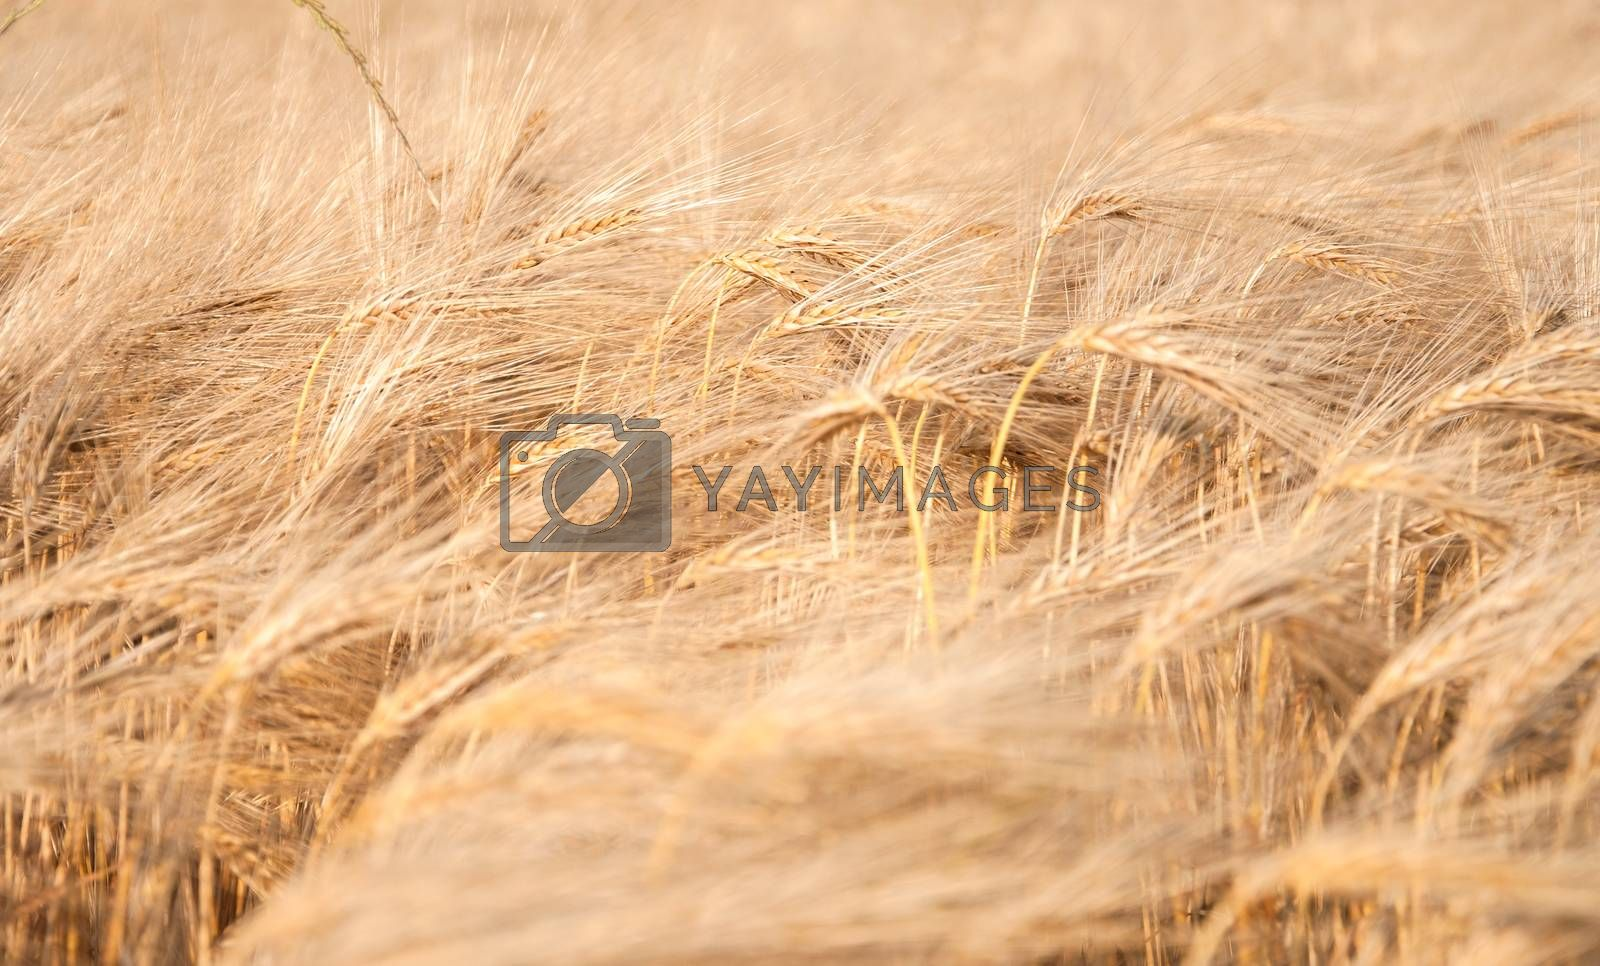 Royalty free image of Wheat field by mkos83